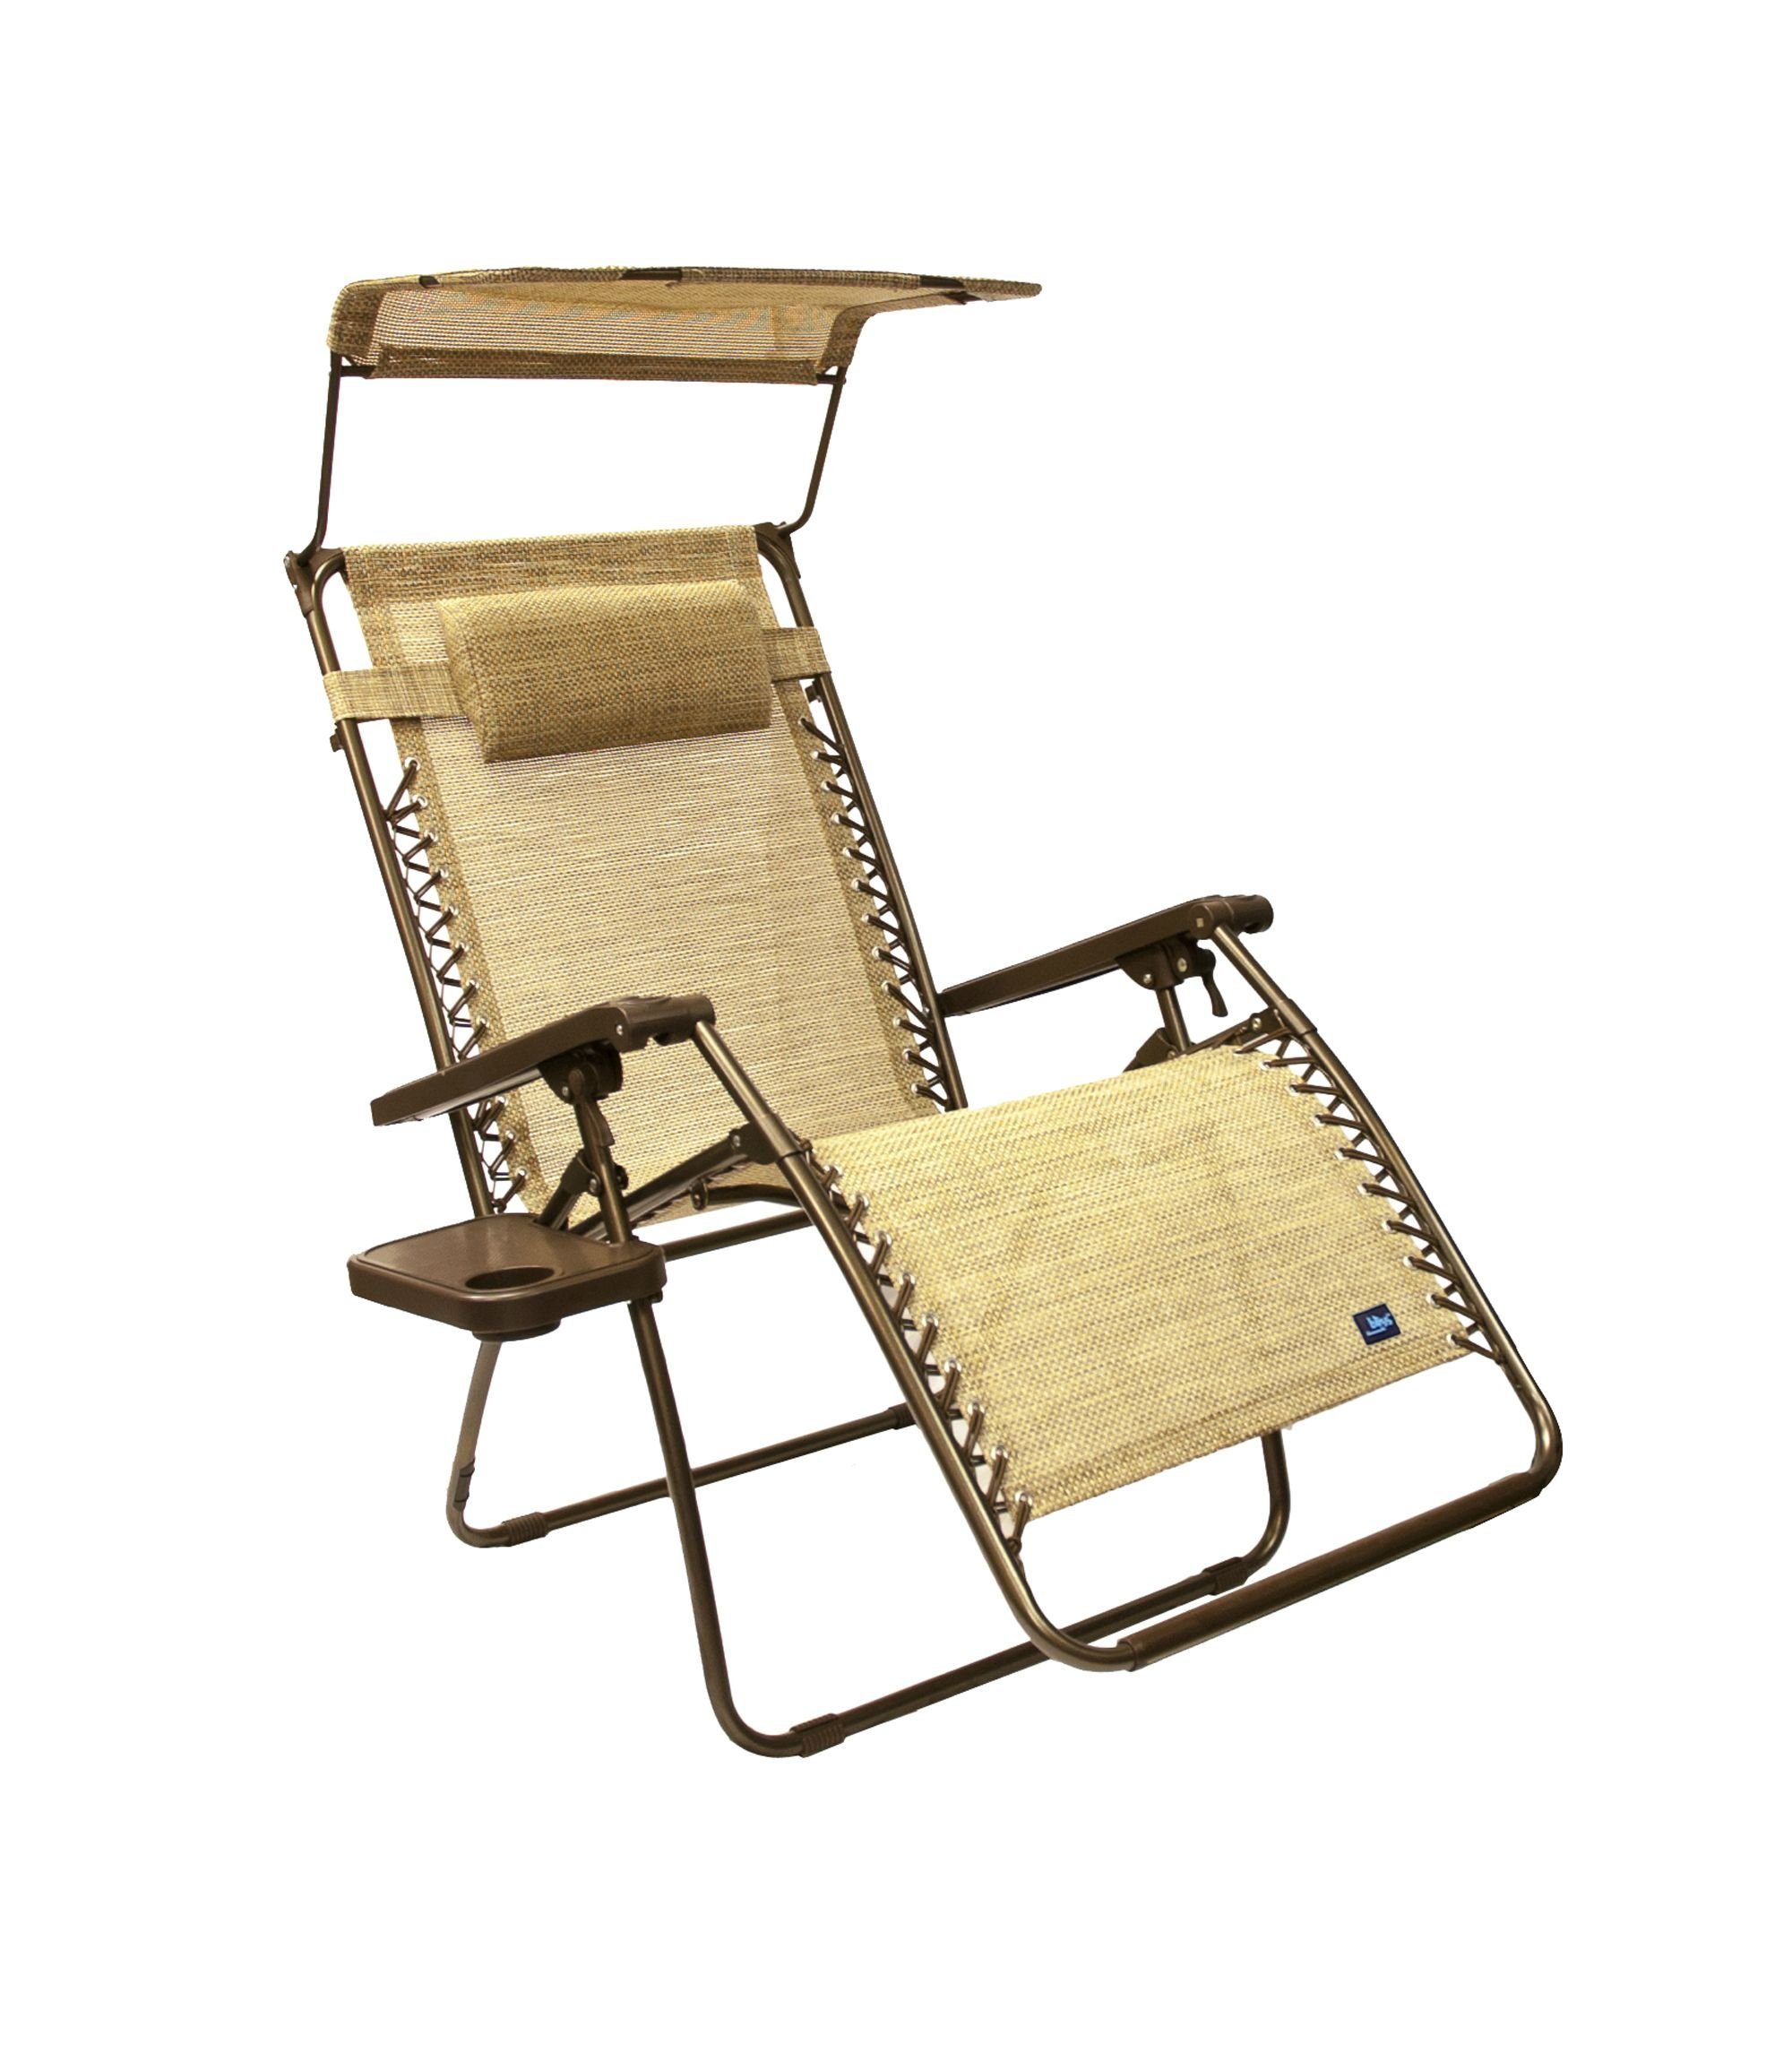 Bliss Hammocks Wide Gravity Free Lounger Chair with Pillow and Canopy and Side Tray, Sand